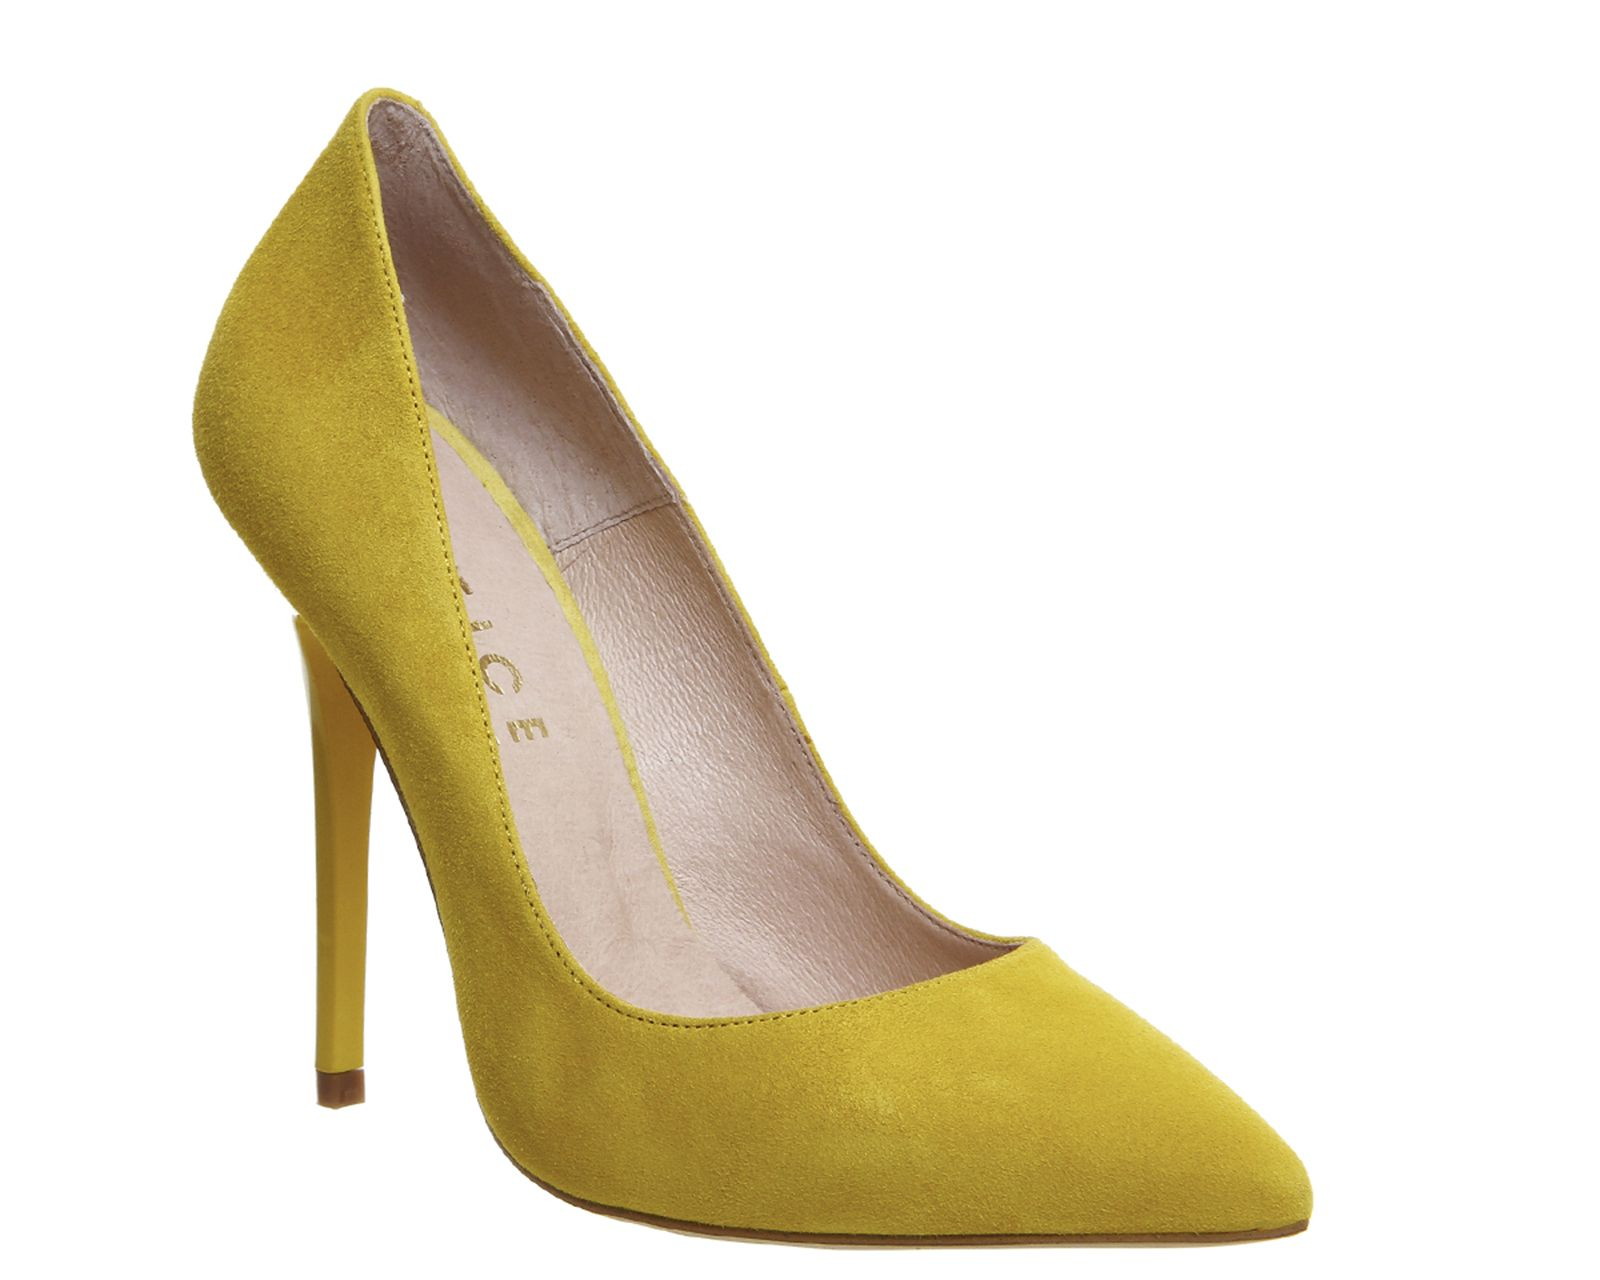 Office On To Point Court Heels Yellow Kid Suede - High Heels